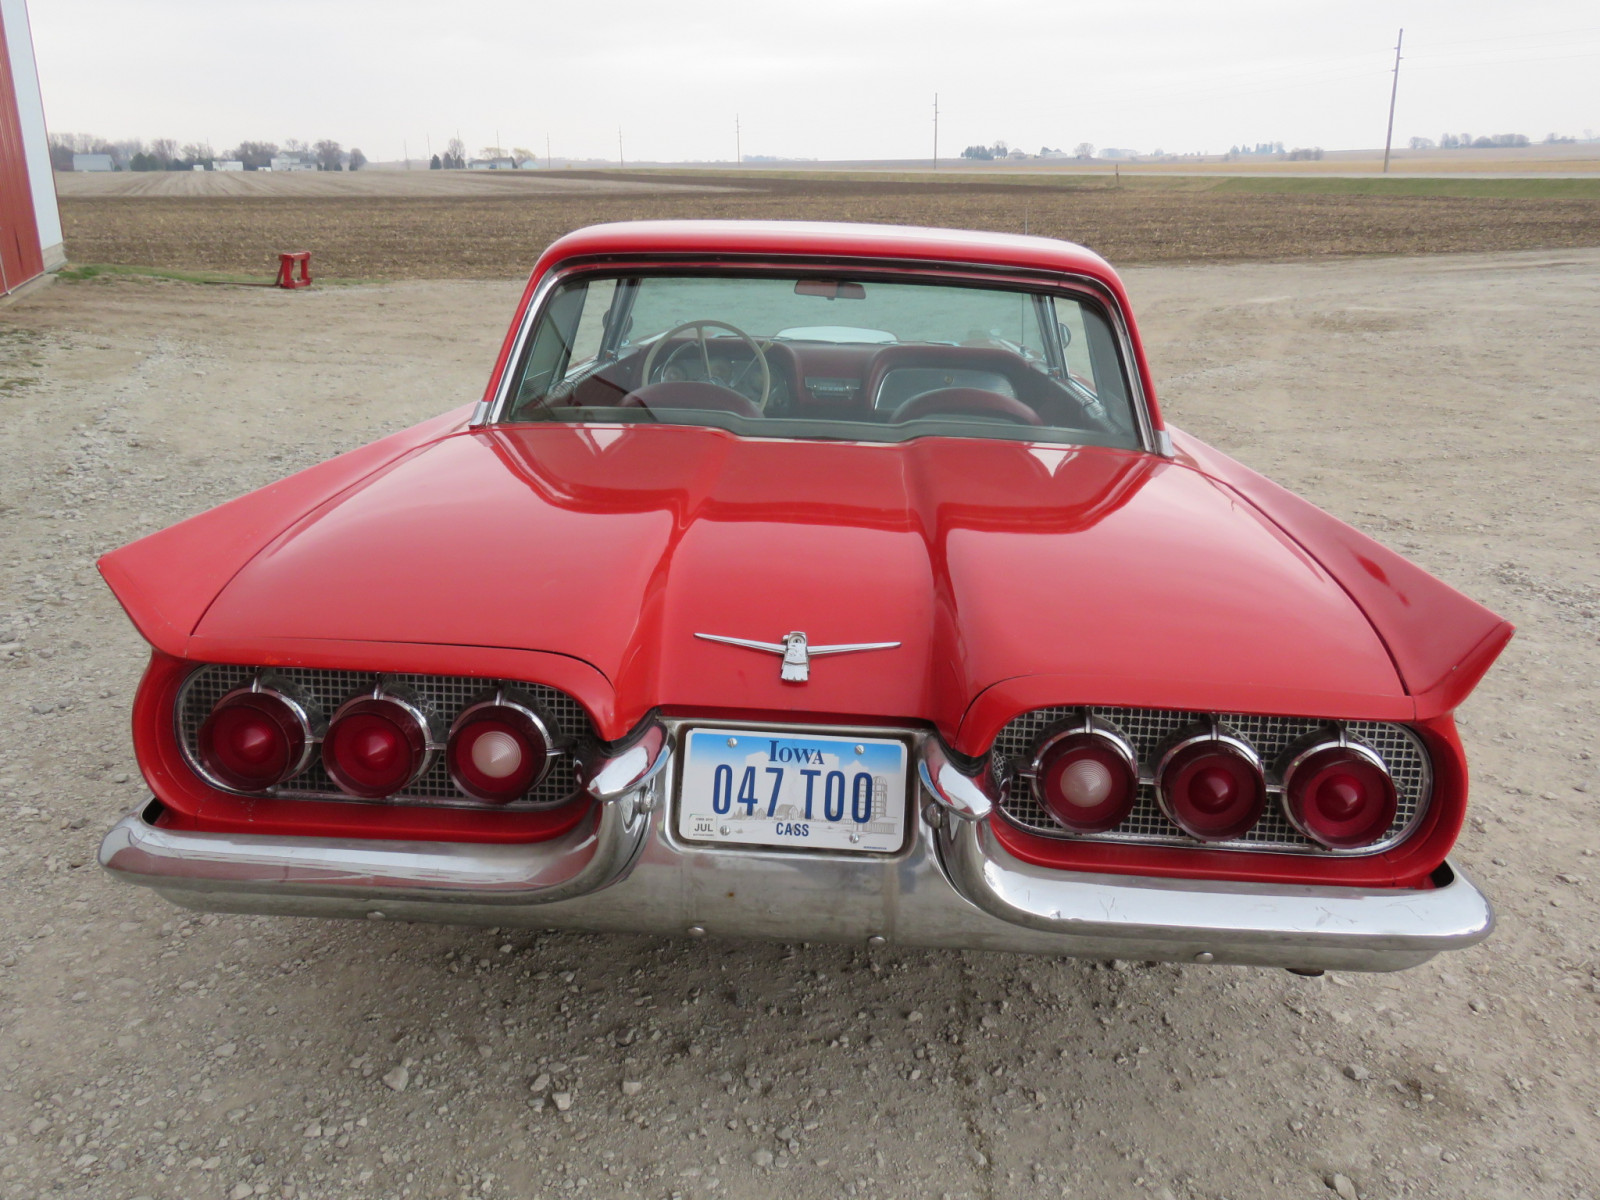 1960 Ford Thunderbird Coupe - Image 5